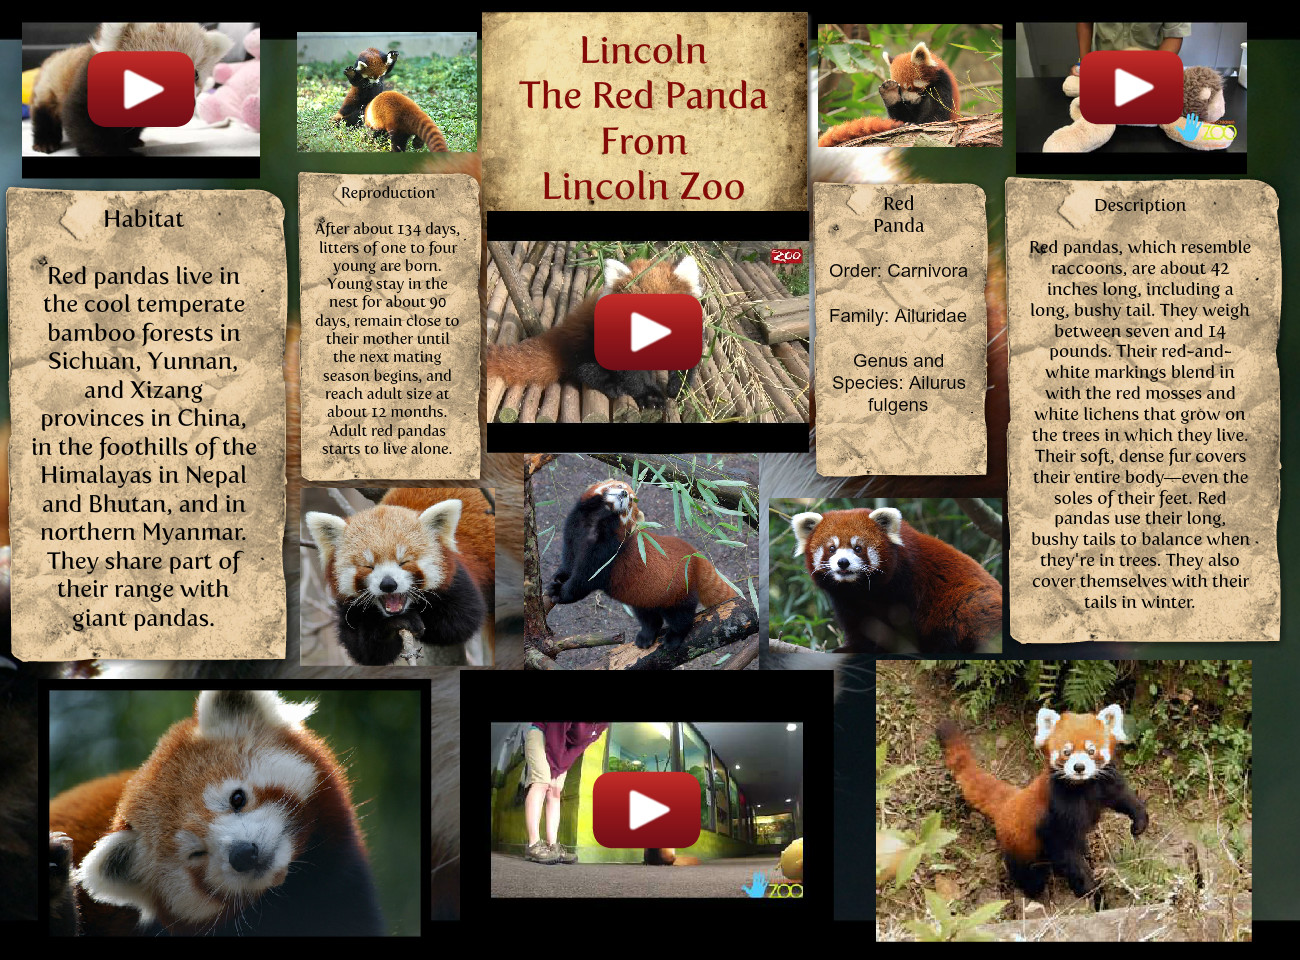 Lincoln The Red Panda From Lincoln Zoo